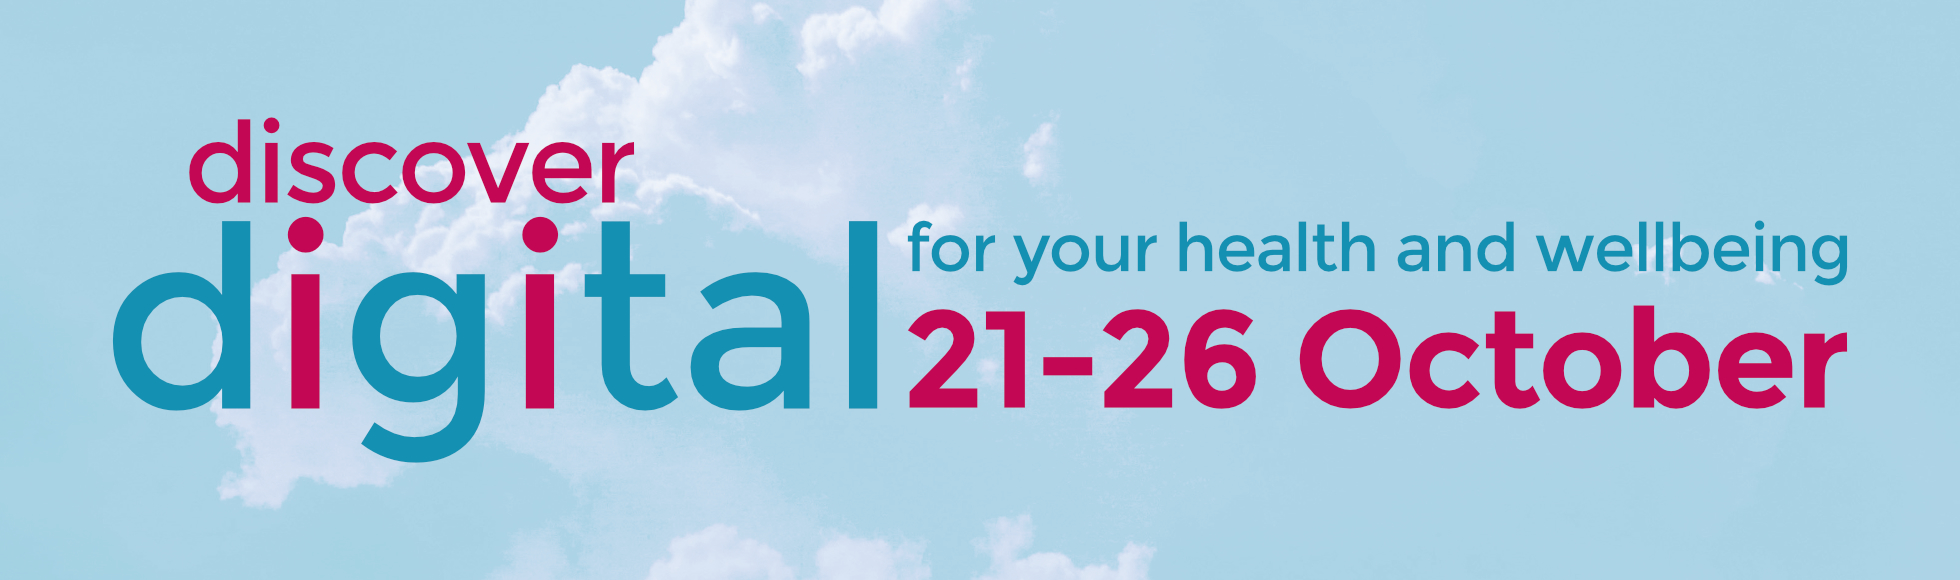 Discover Digital: for your health and wellbeing. 21 - 26 Oct